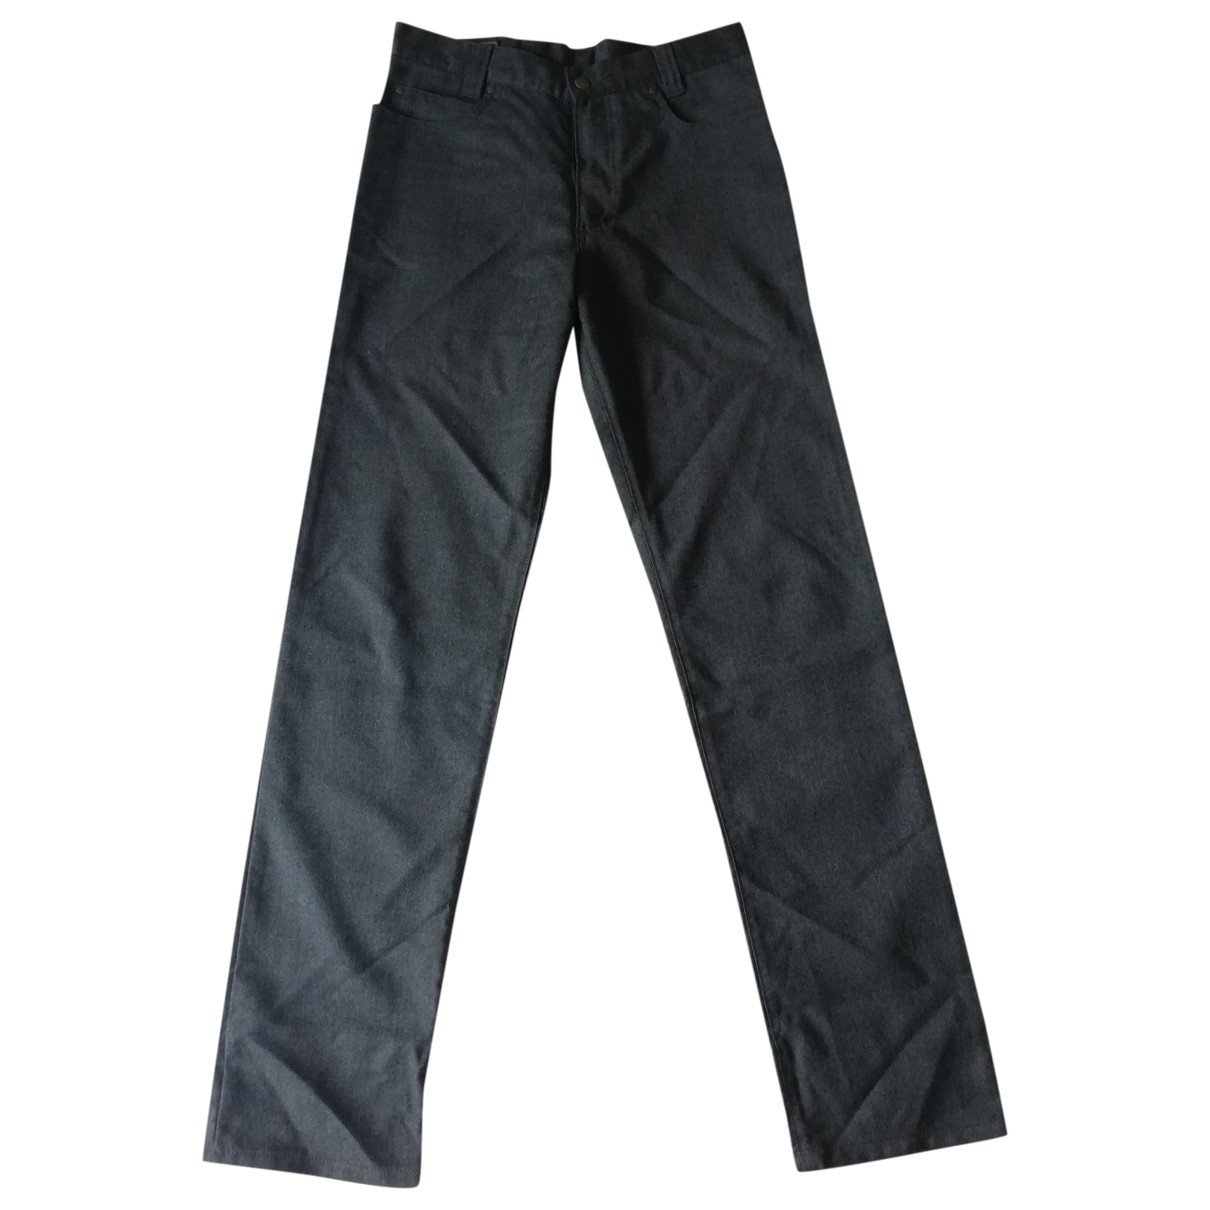 Versace N Anthracite Wool Trousers for Men 30 UK - US